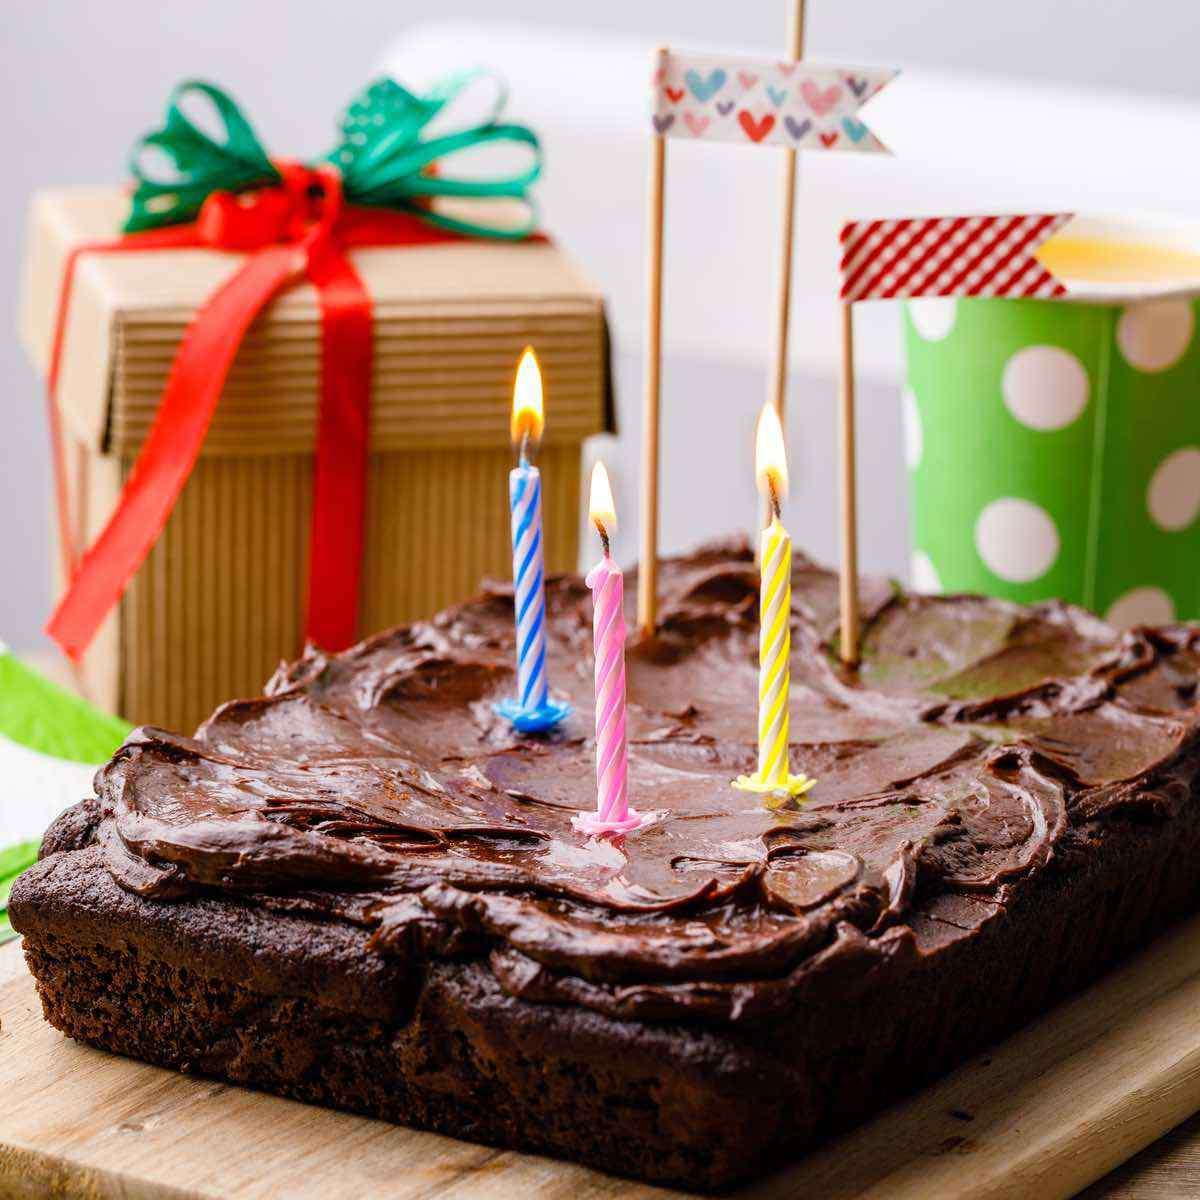 Excellent Double Chocolate Almond Flour Sheet Birthday Cake Yum Miss Wish Funny Birthday Cards Online Inifodamsfinfo